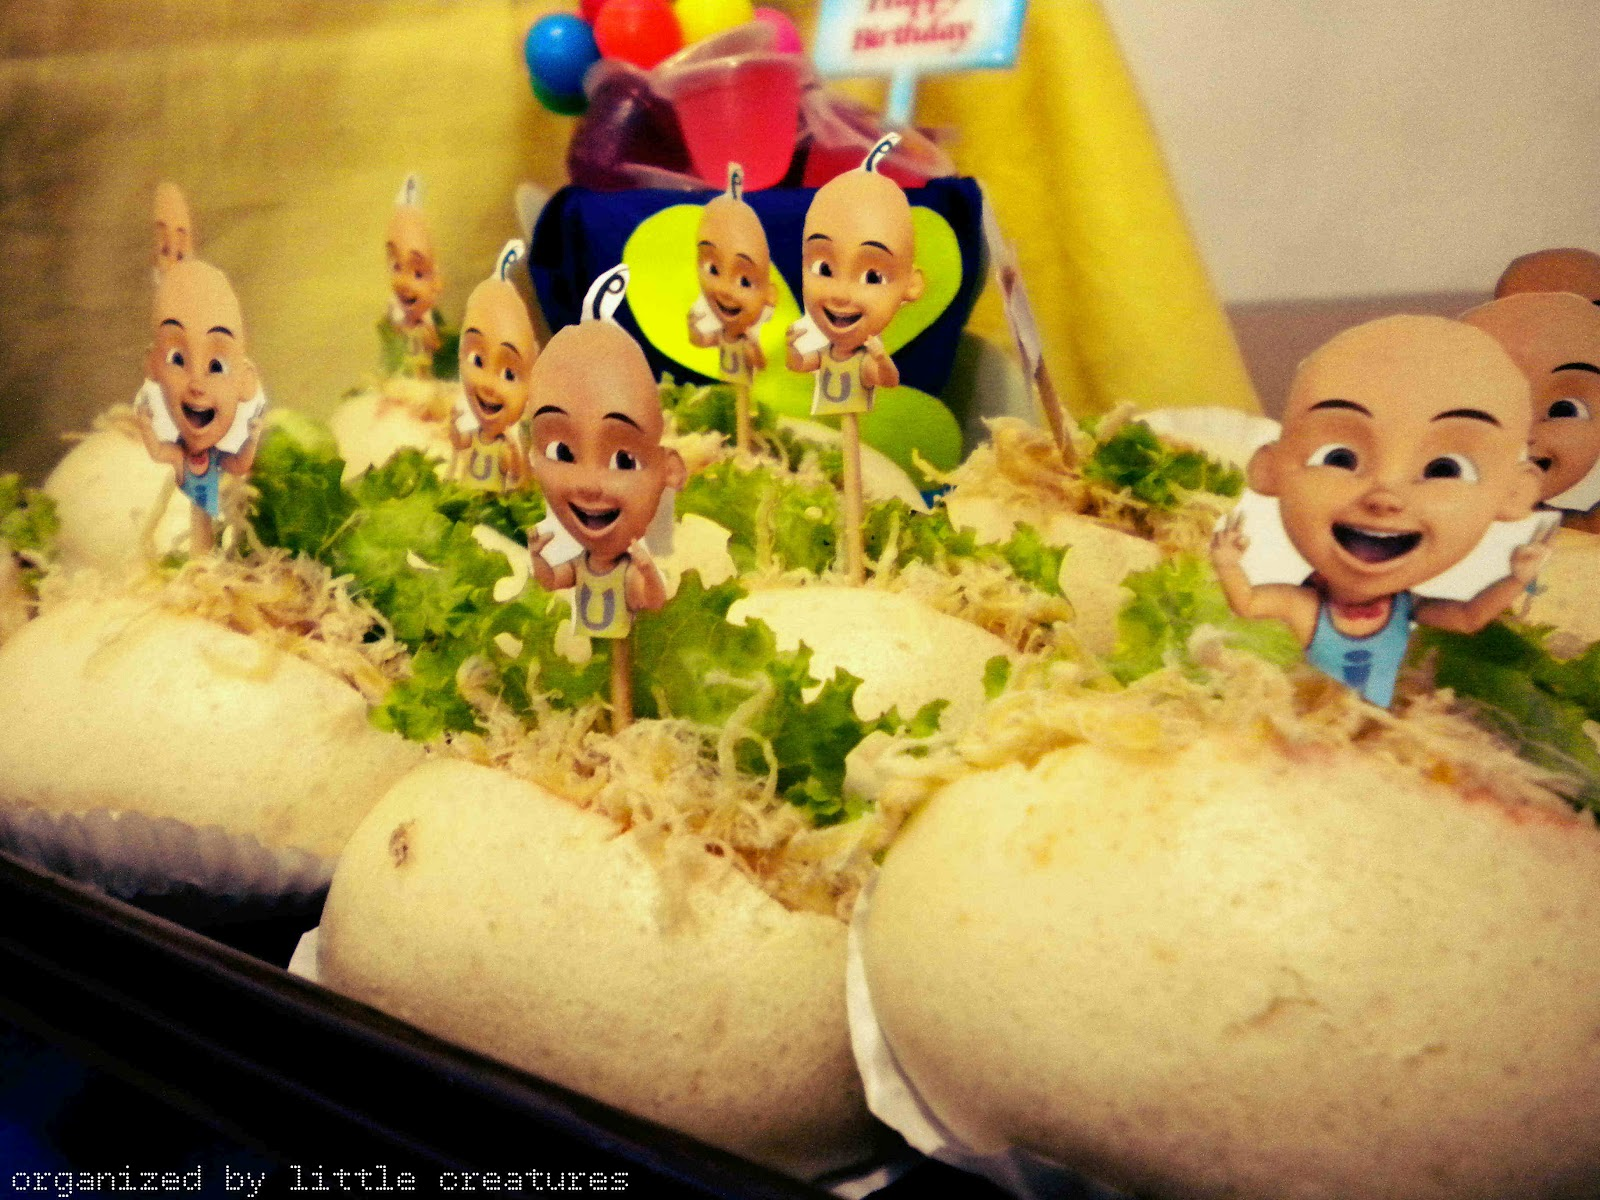 Little creatures avicennas upin ipin birthday party cookies by cindy selo adji stopboris Image collections